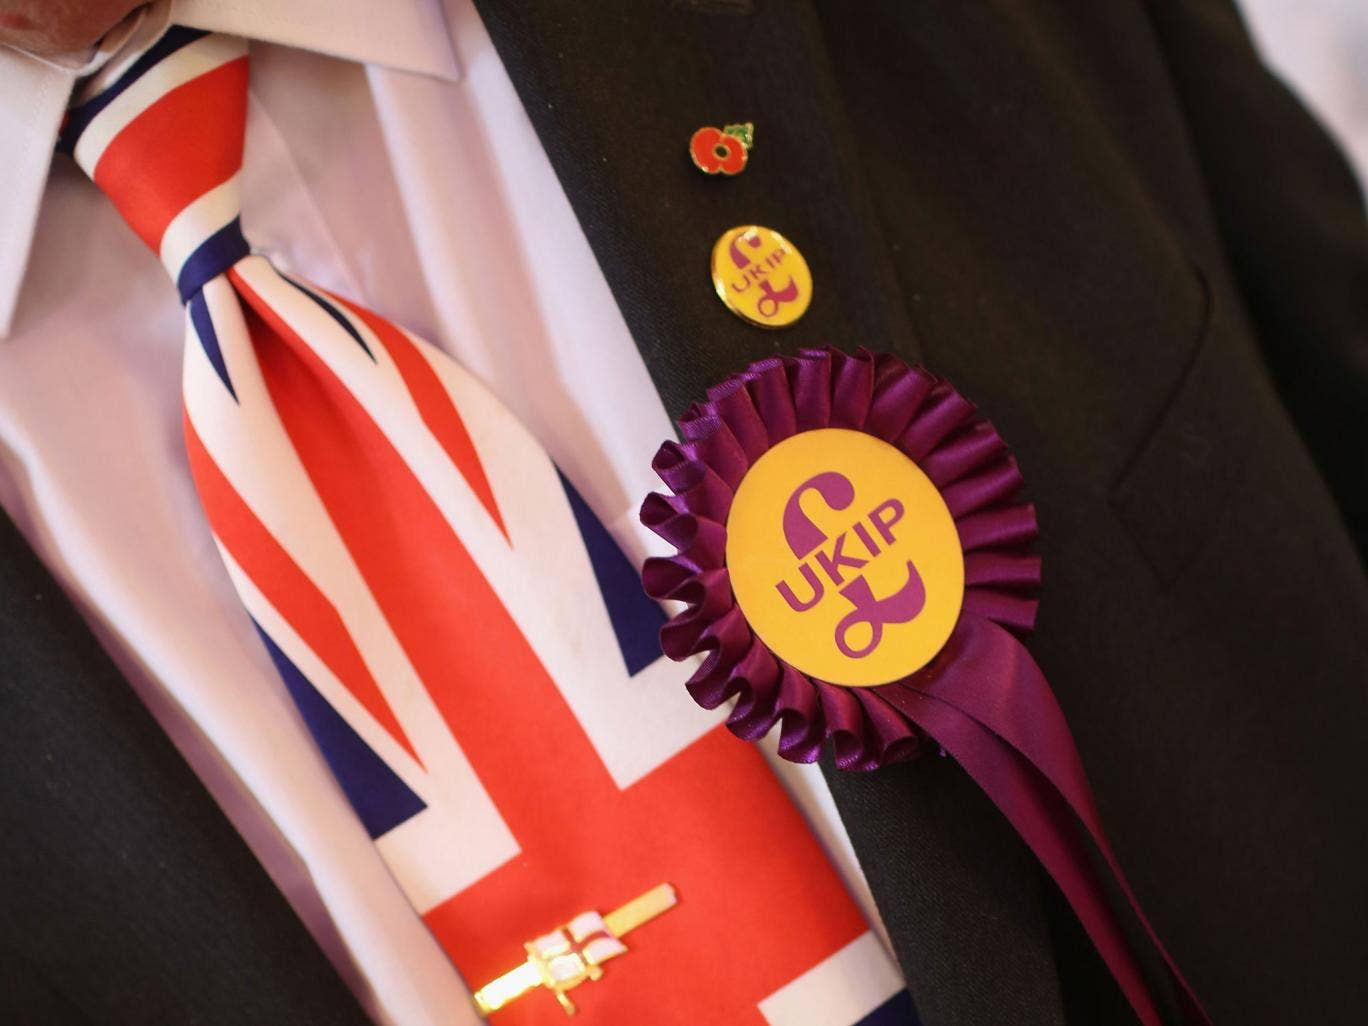 A delegate sporting a Union Flag tie attends the UKIP annual party conference at Central Hall, Westminster on September 21, 2013 in London, England. Members of the United kingdom Independent Party are rallying after UKIP politician Godfrey Bloom lost the